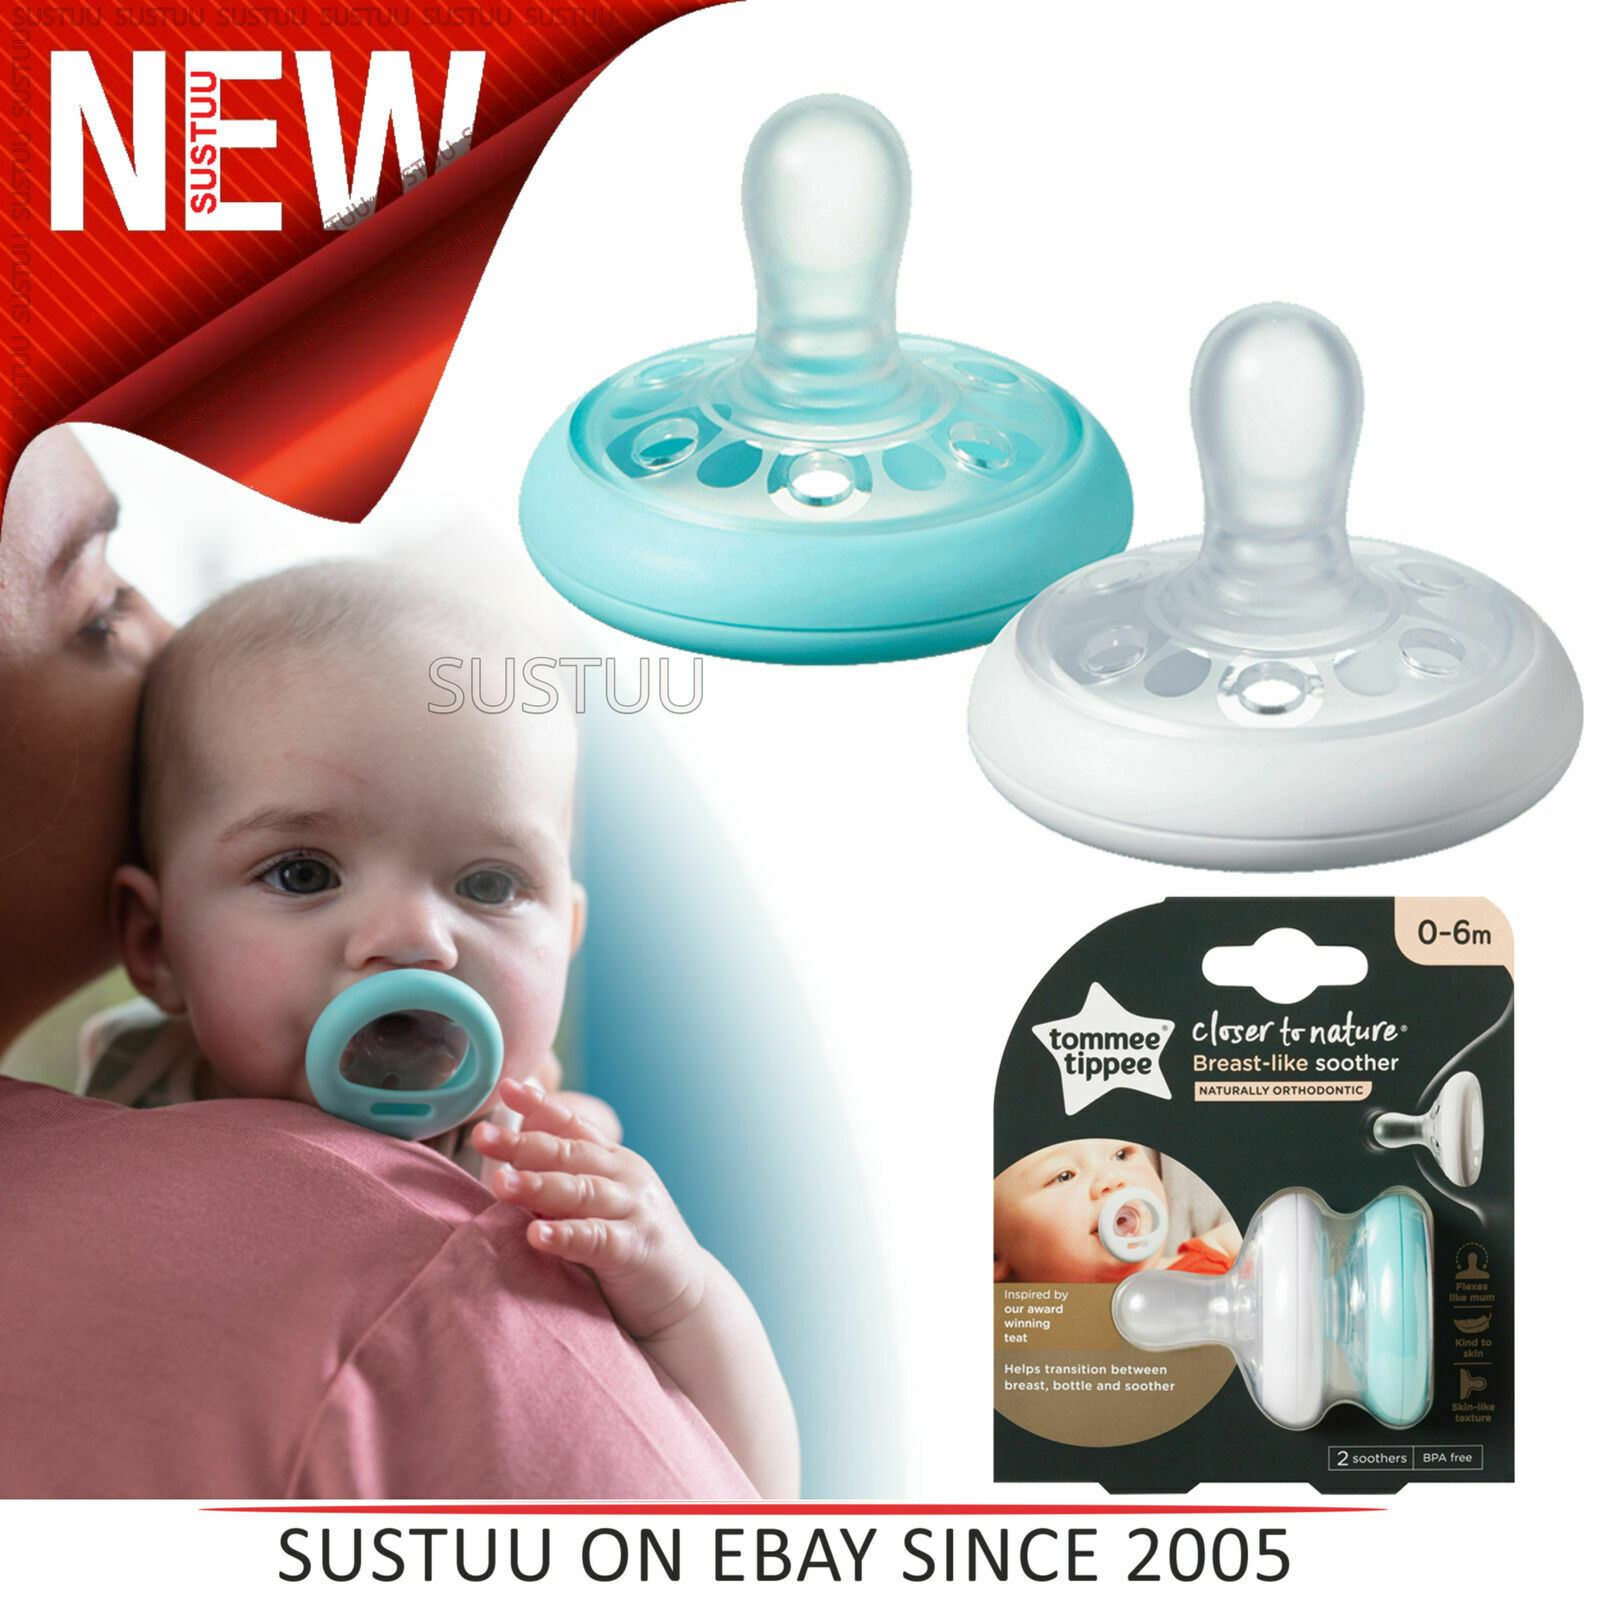 3 x Tommee Tippee Closer to Nature sein comme mannequin sucettes 0-6 mon Blanc